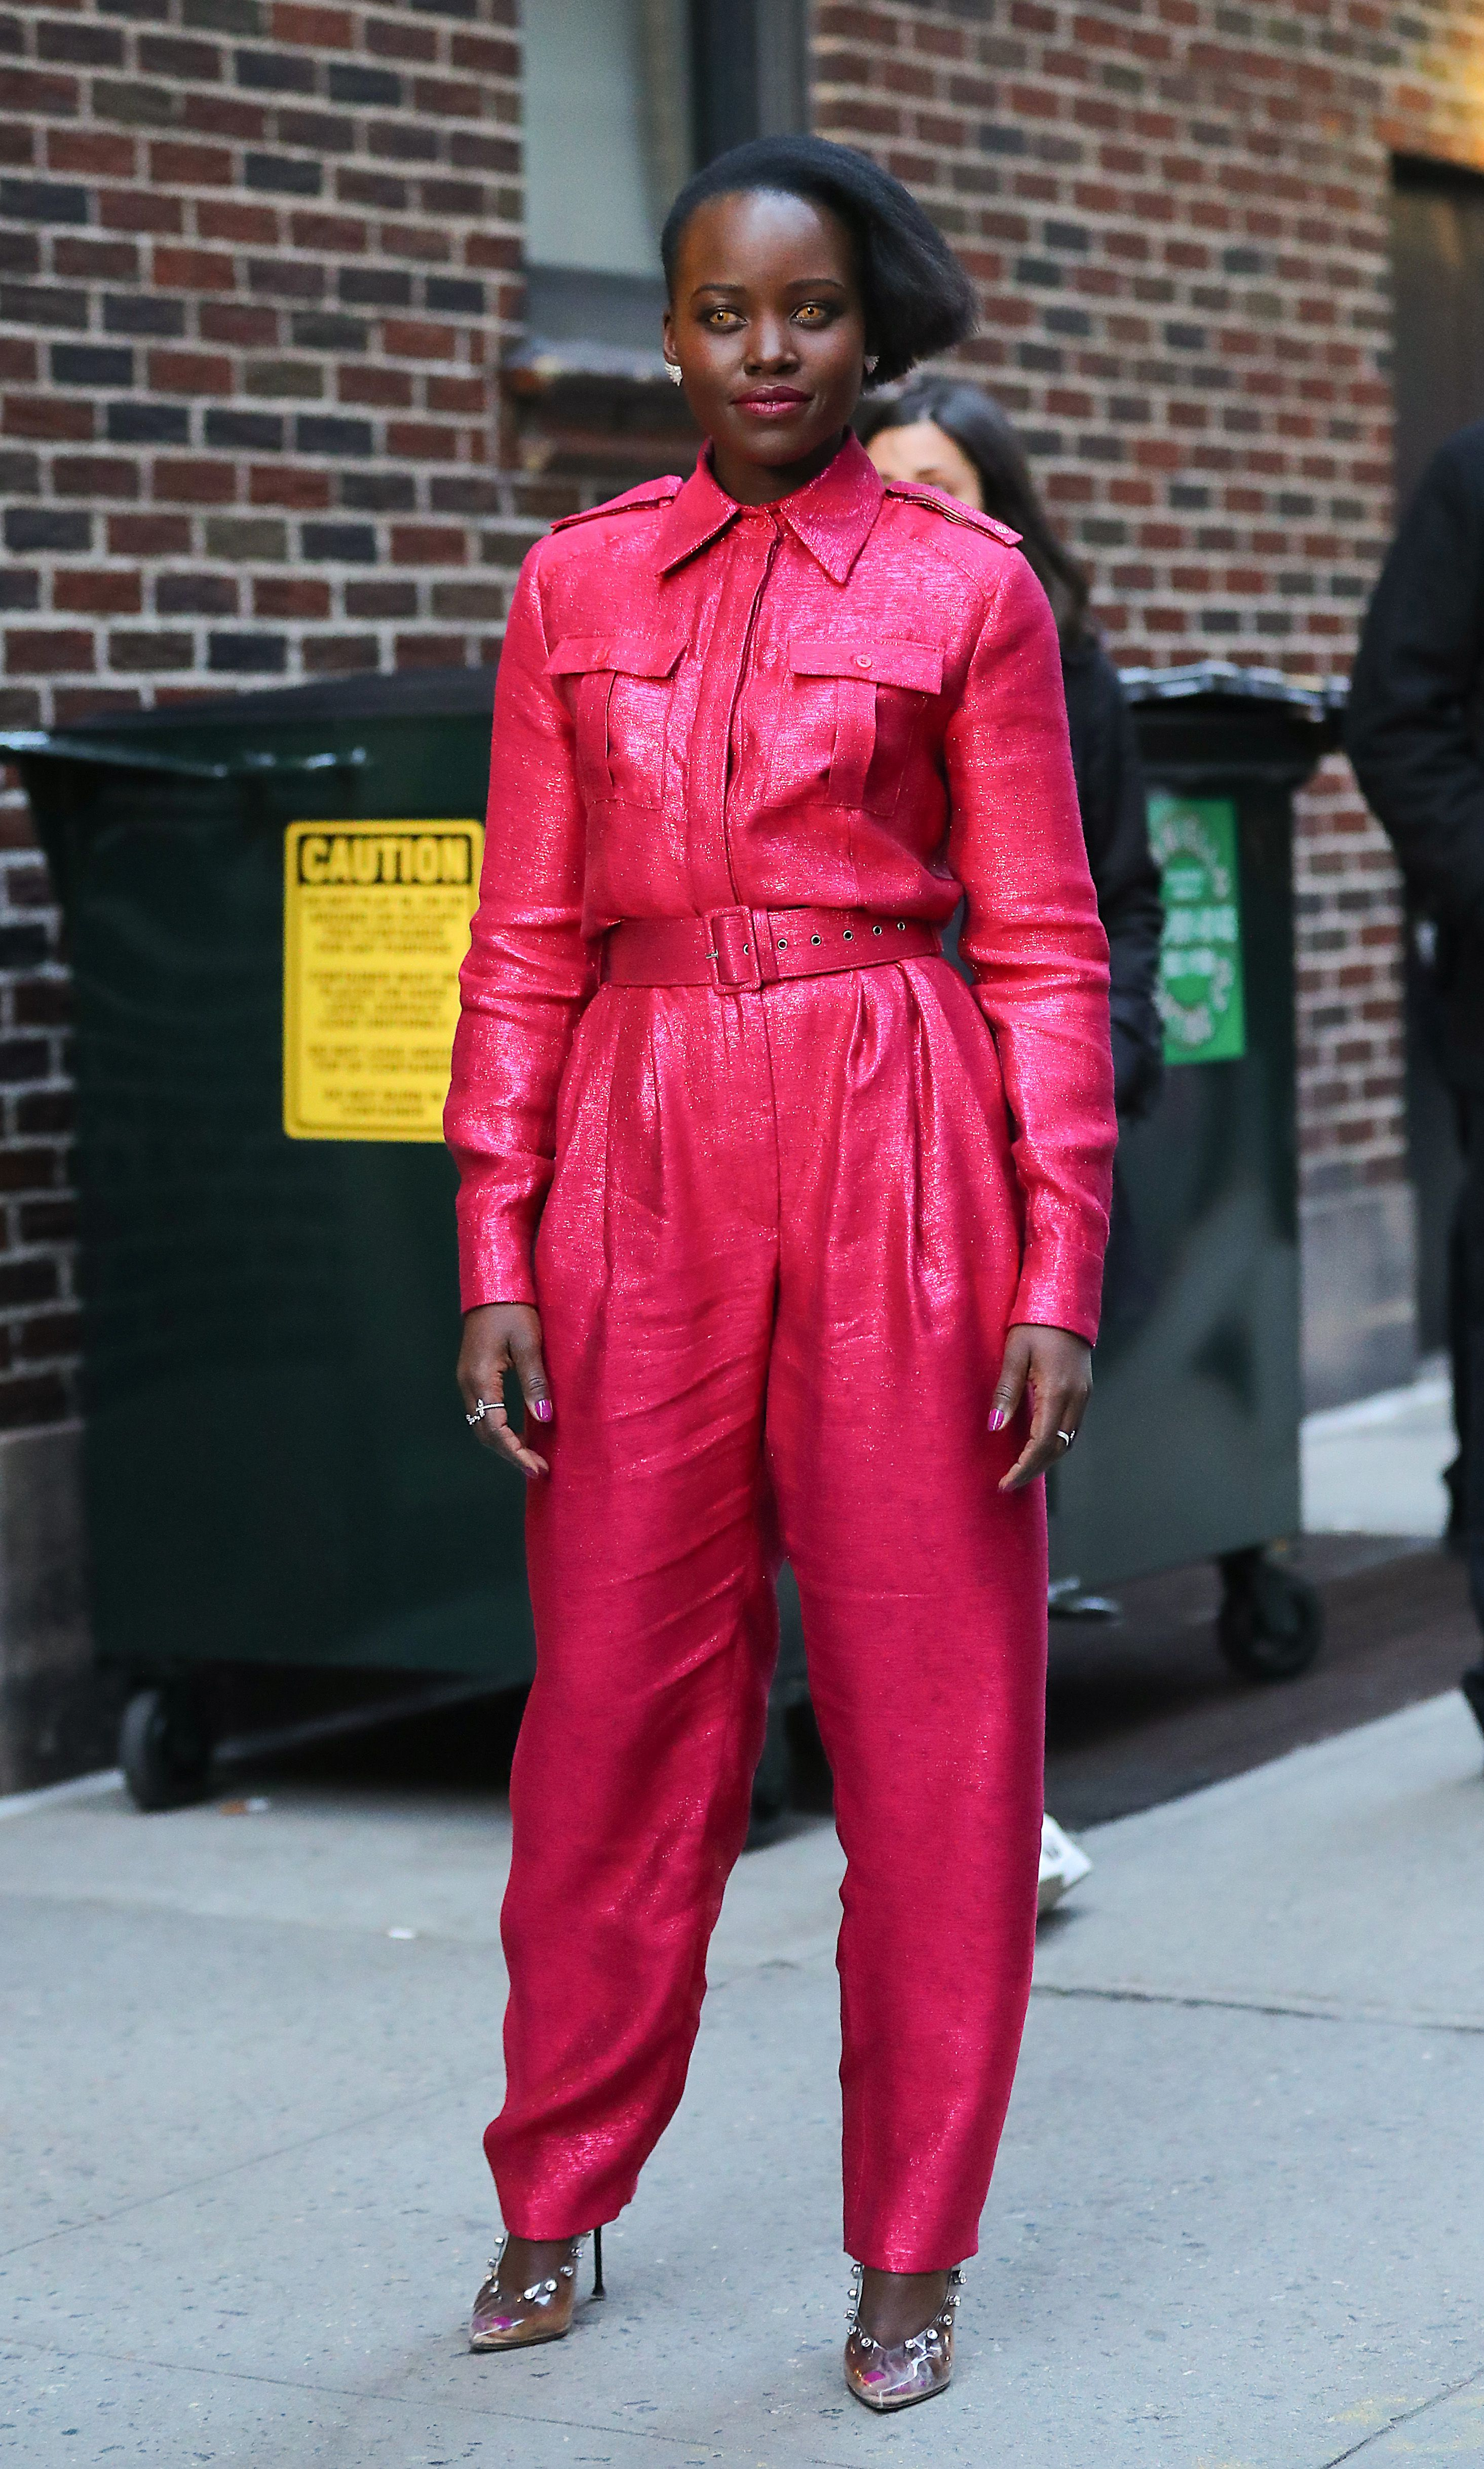 shutterstock 10159652f Lupita Nyong'o's Latest Ensemble Is So Cute It's Literally Improving My Mood